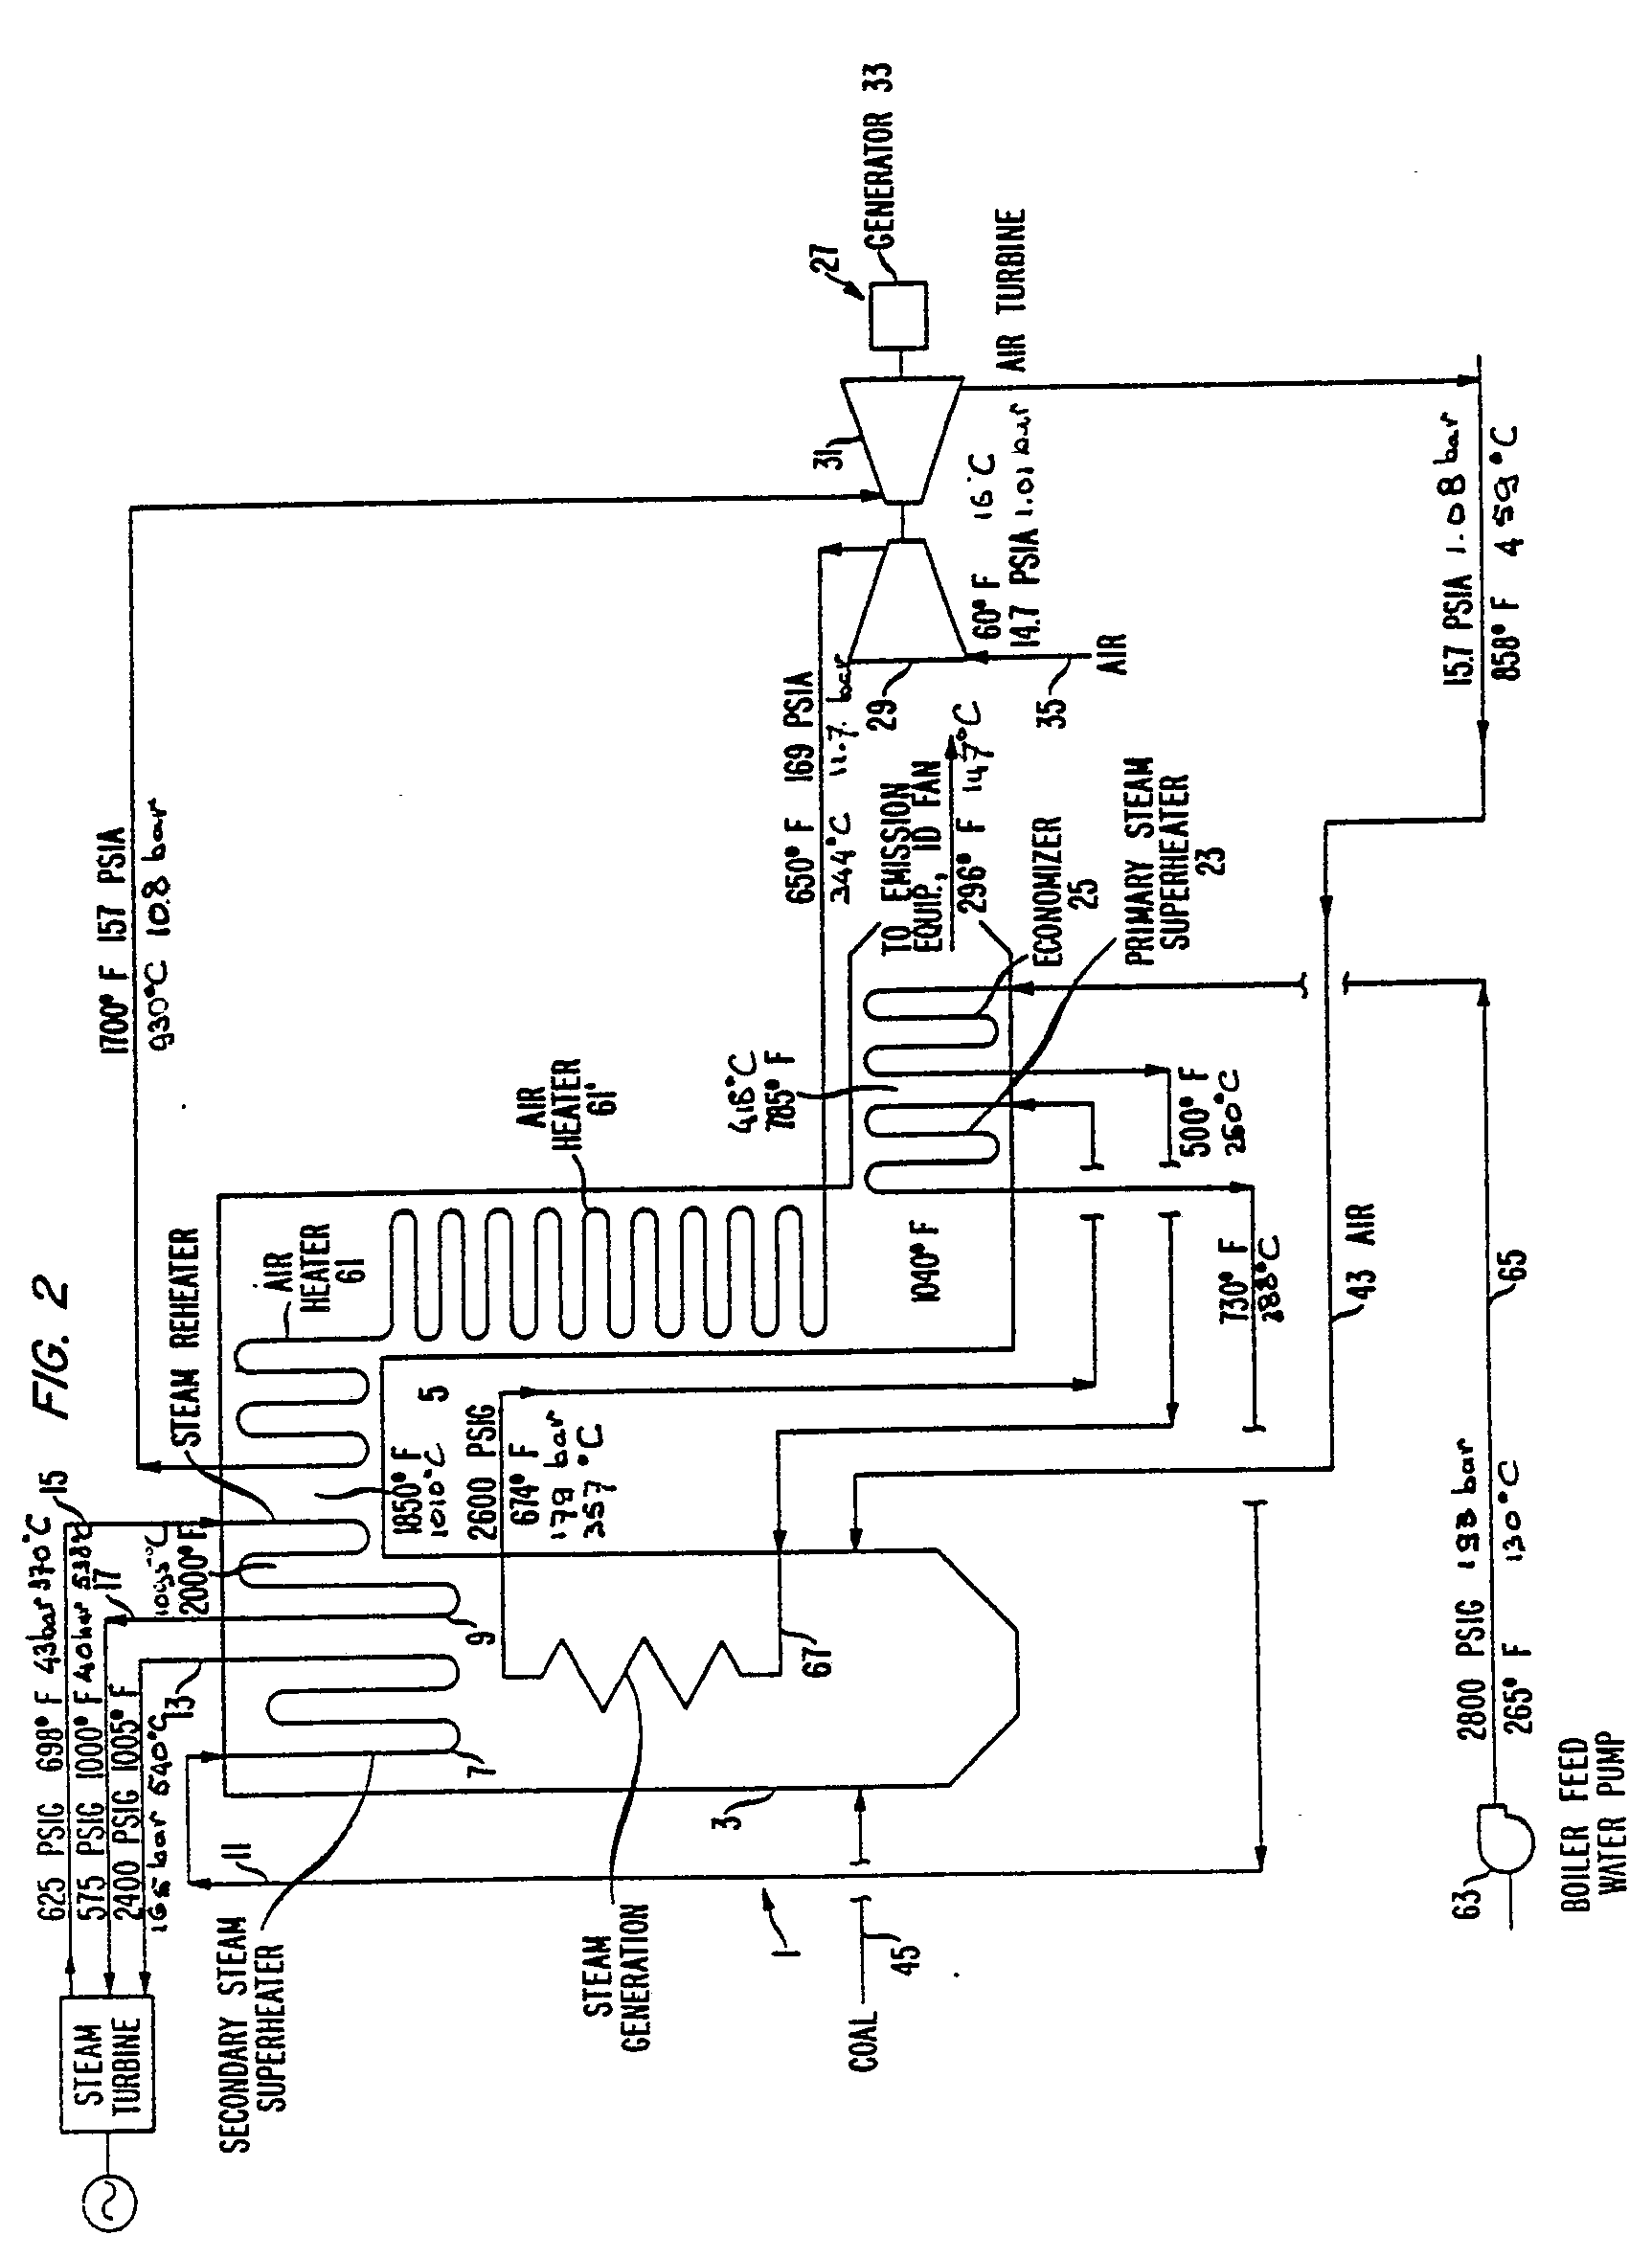 hight resolution of 92 oldsmobile silhouette fuse box auto electrical wiring diagram 2002 pontiac montana fuse box diagram 1999